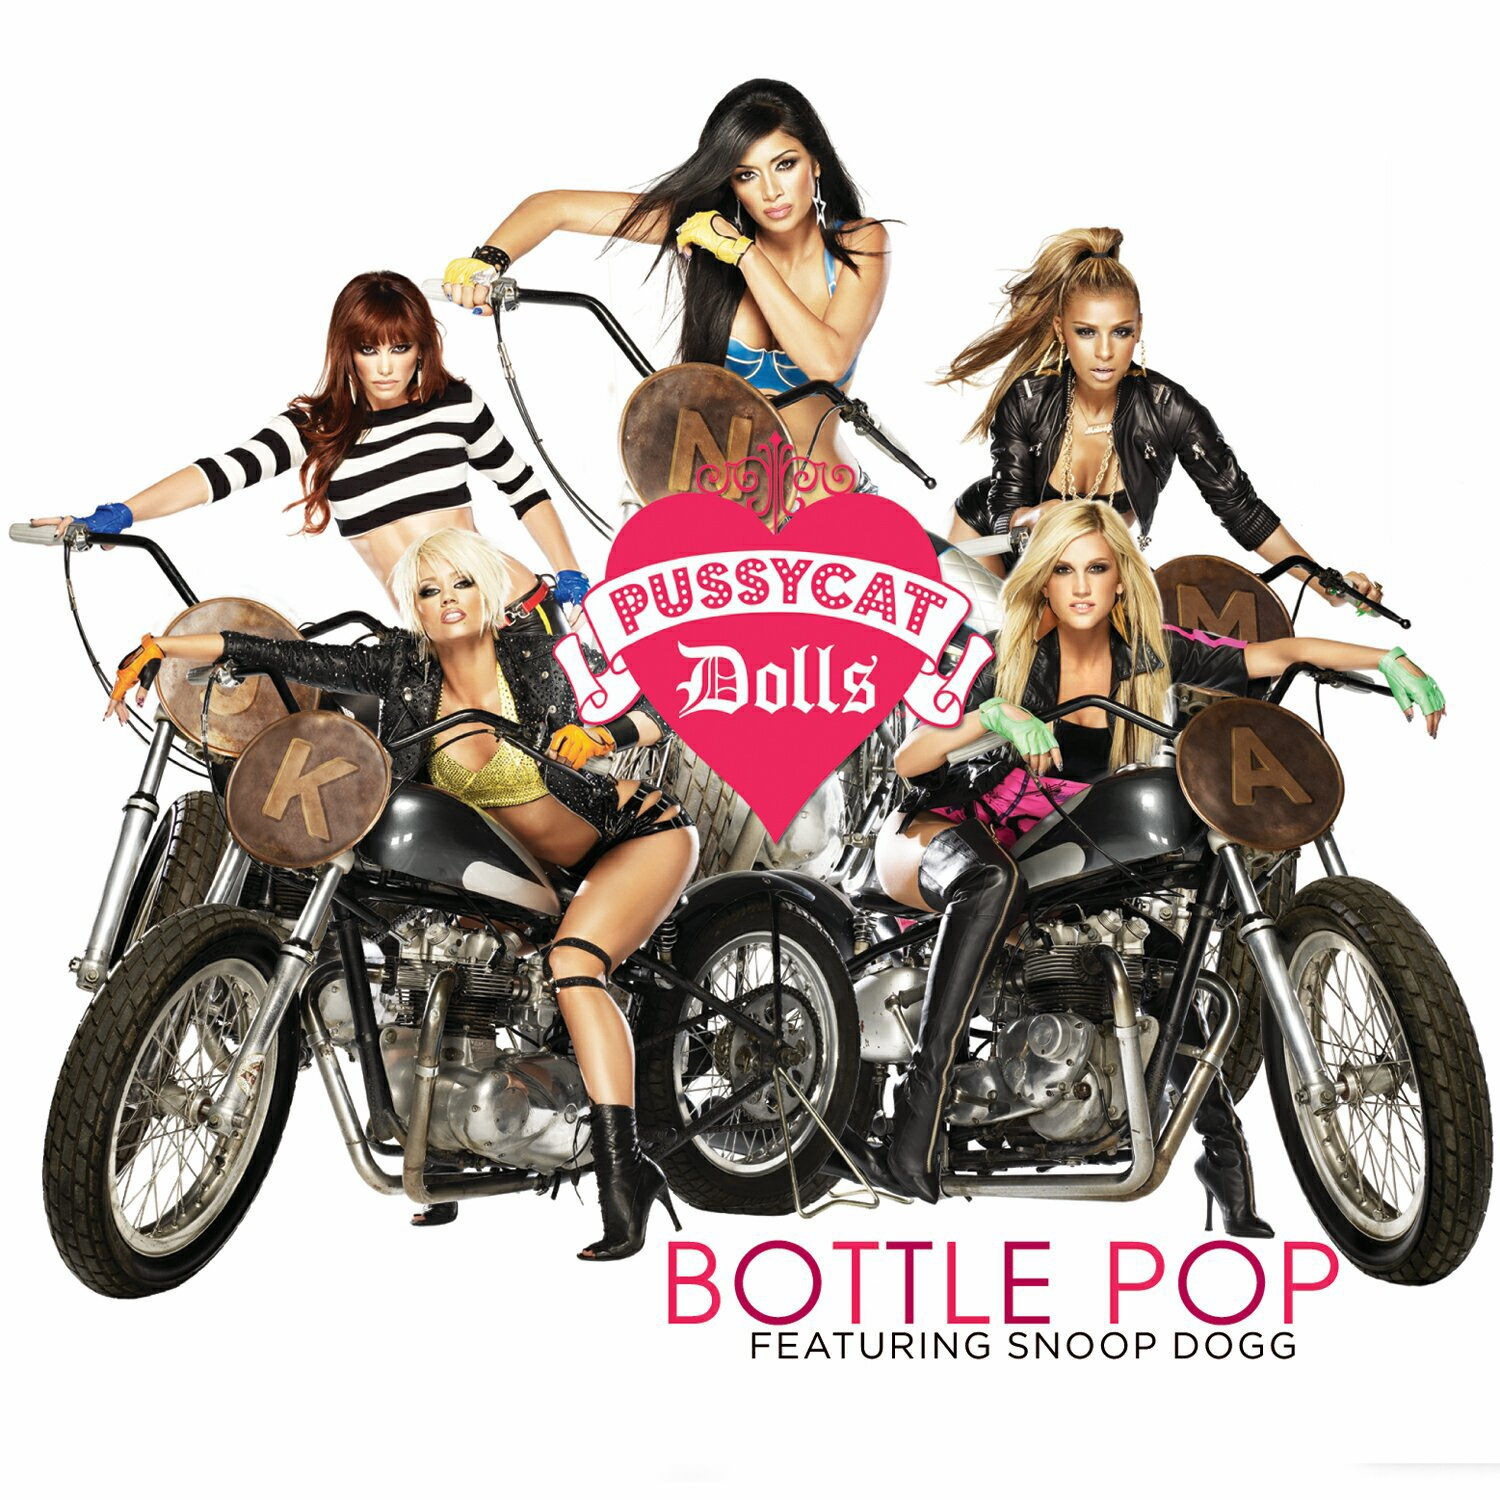 Uncategorized information about pussycat dolls - The Pussycat Dolls Bottle Pop Urban Remix Feat Snoop Kardinal Offishall Euphorialand